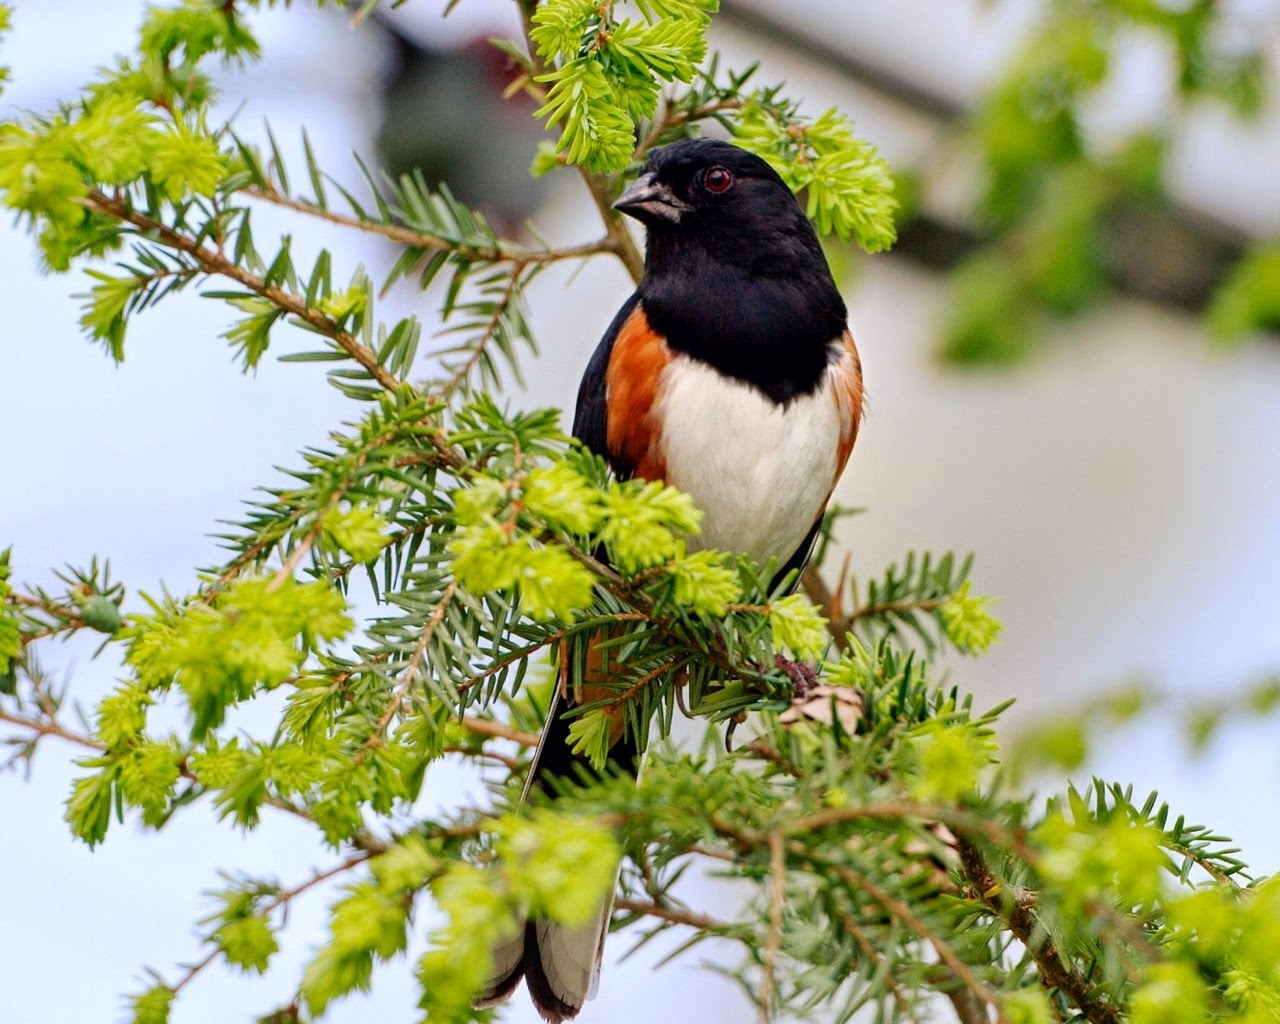 Lovable images birds wallpapers free download - Hd birds images download ...